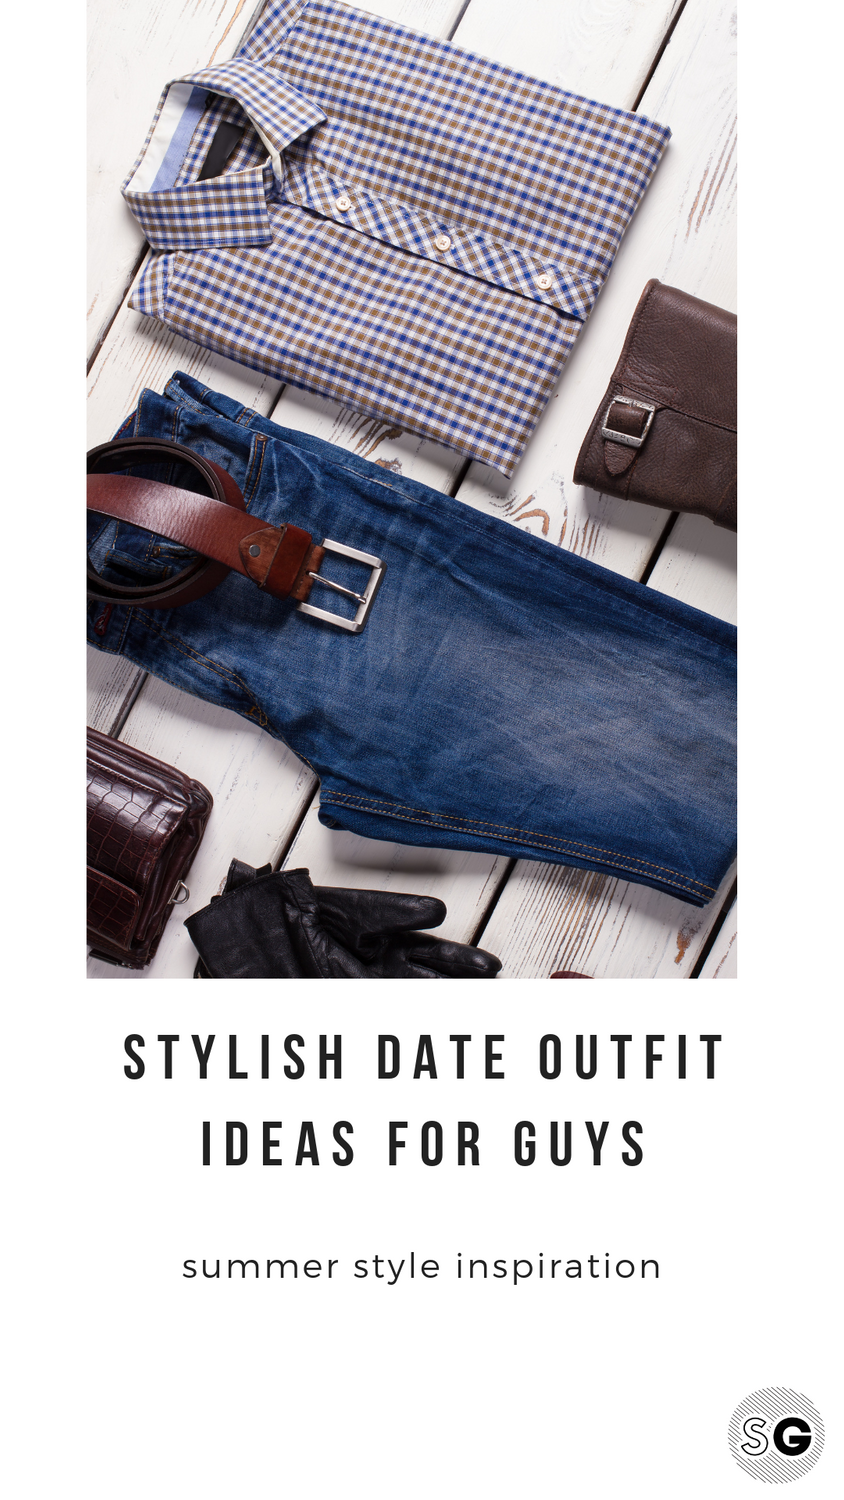 12 Super-Stylish Summer Date Outifts for Men